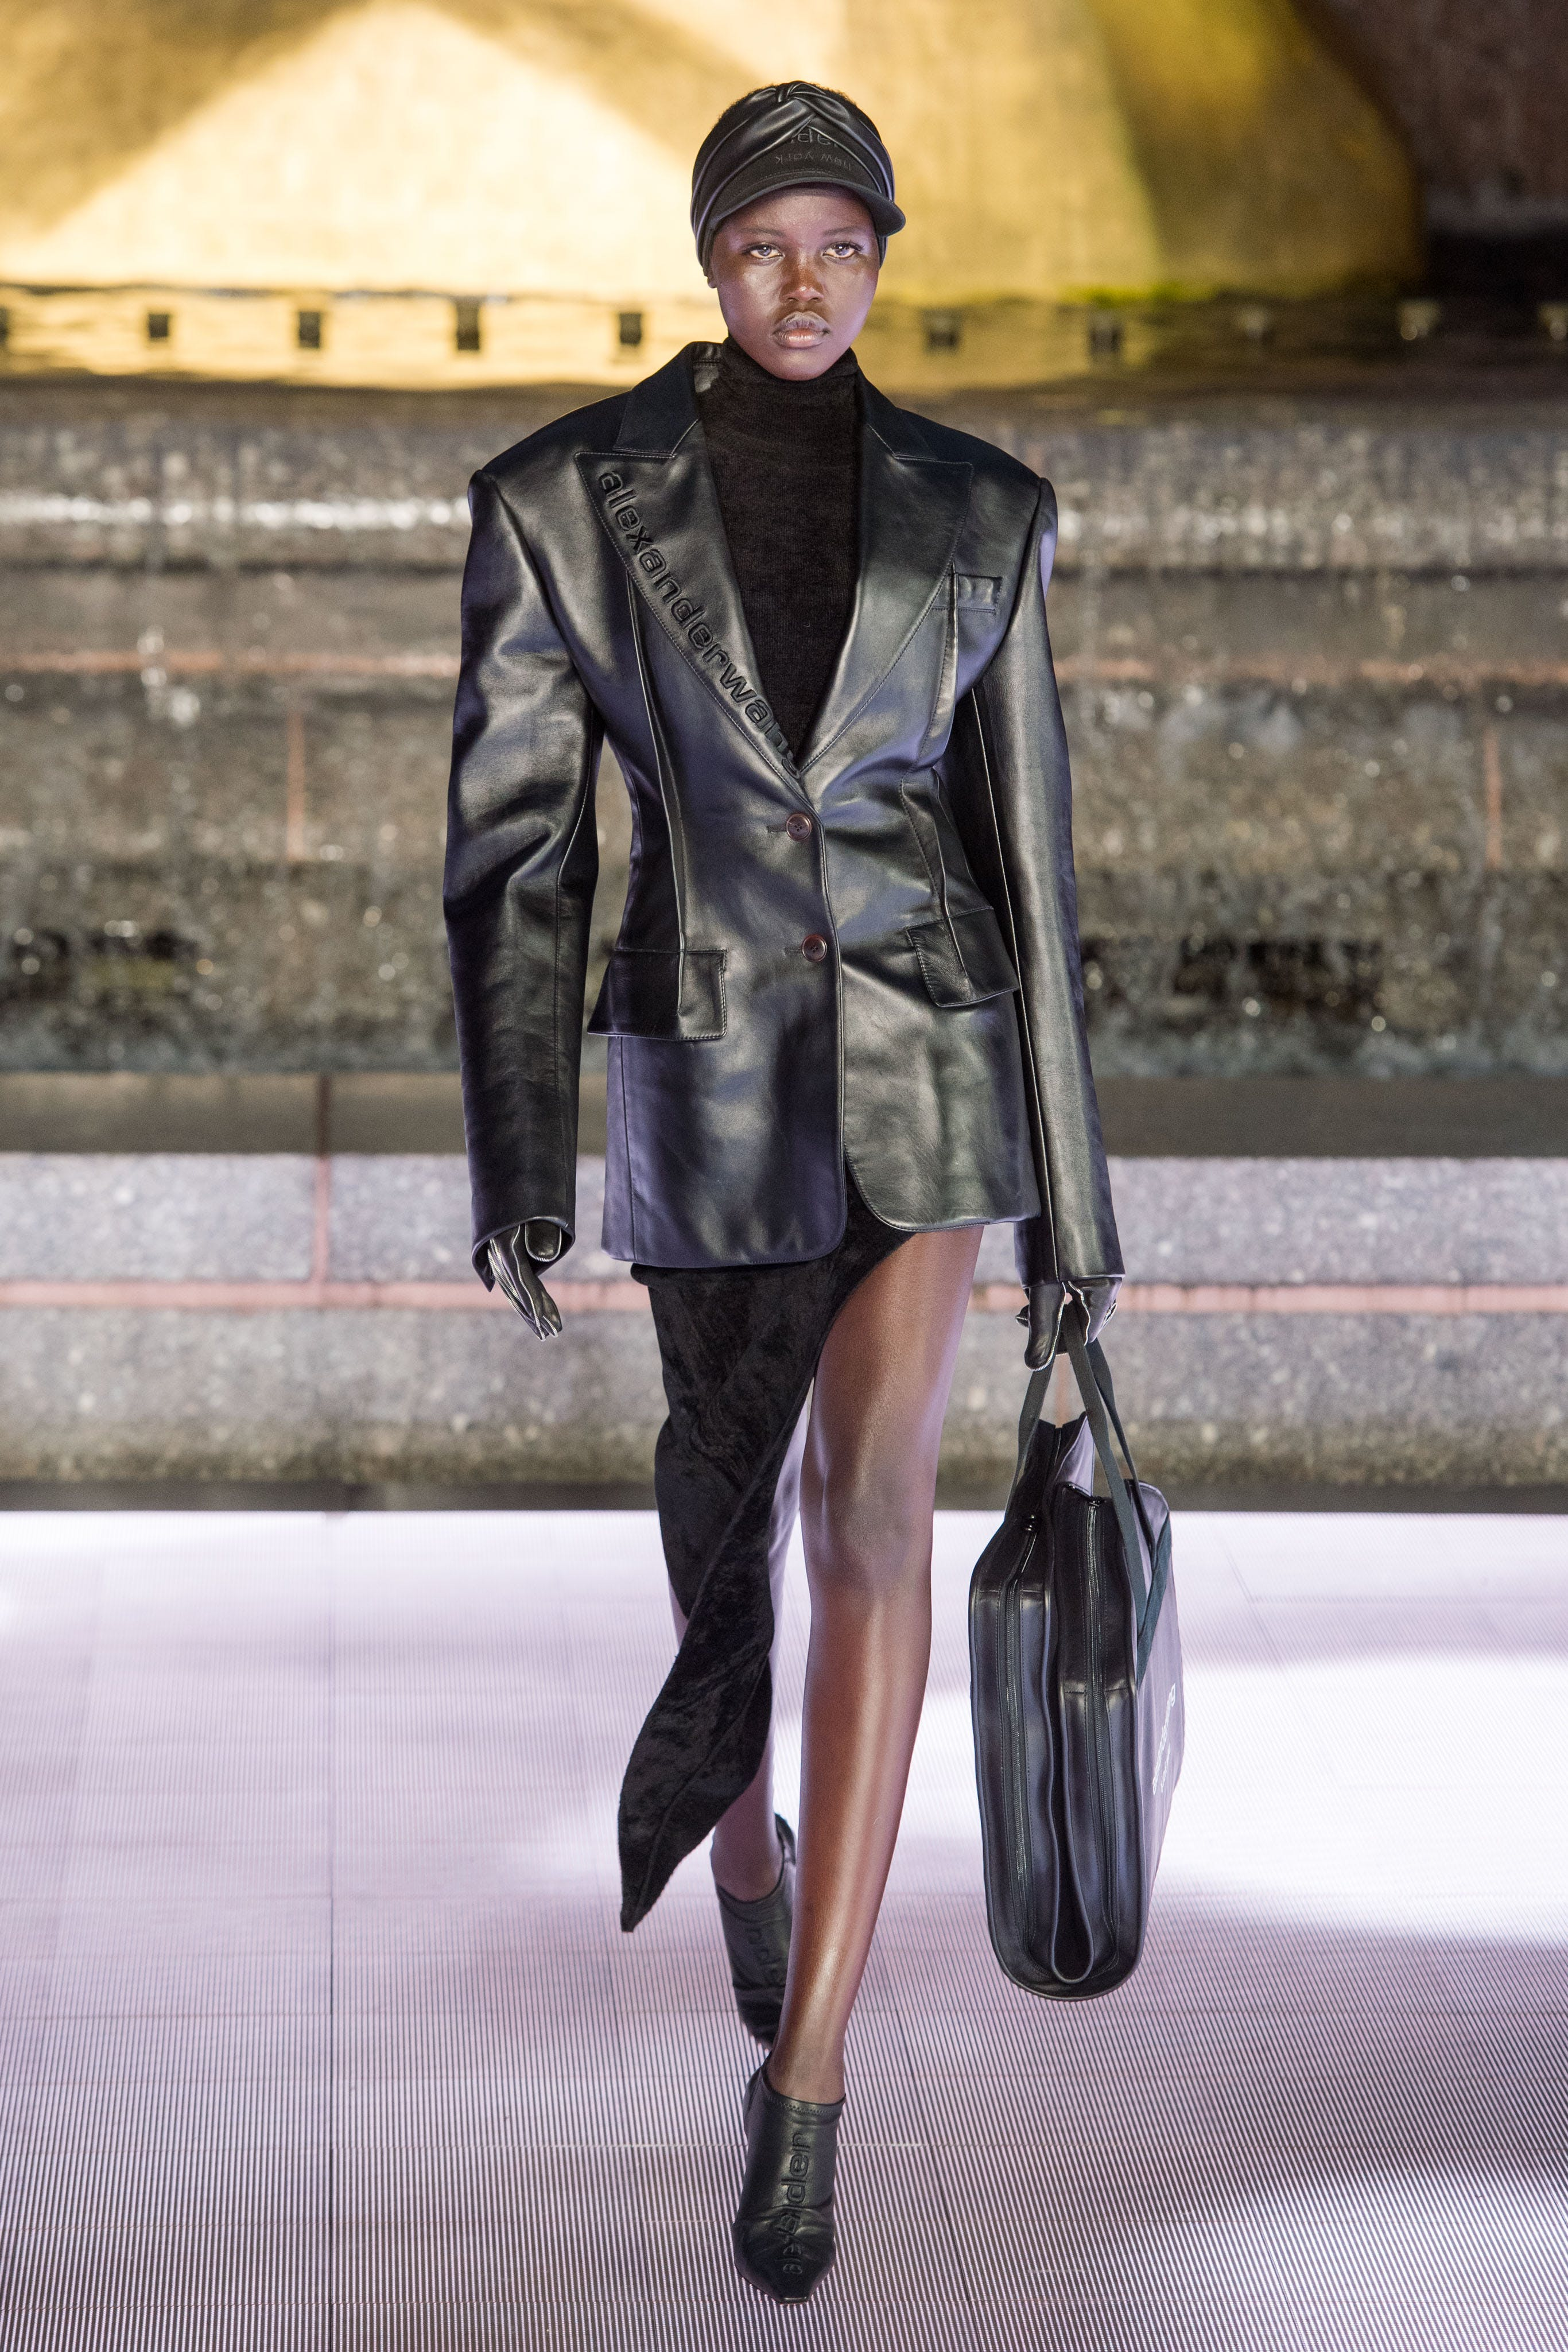 Alexander Wang Runway Oversized Padded Shoulder Blazer Turtleneck in Black Asymmetric Floor Length Skirt in Black Vanna Mule in Black Spring 20 RTW